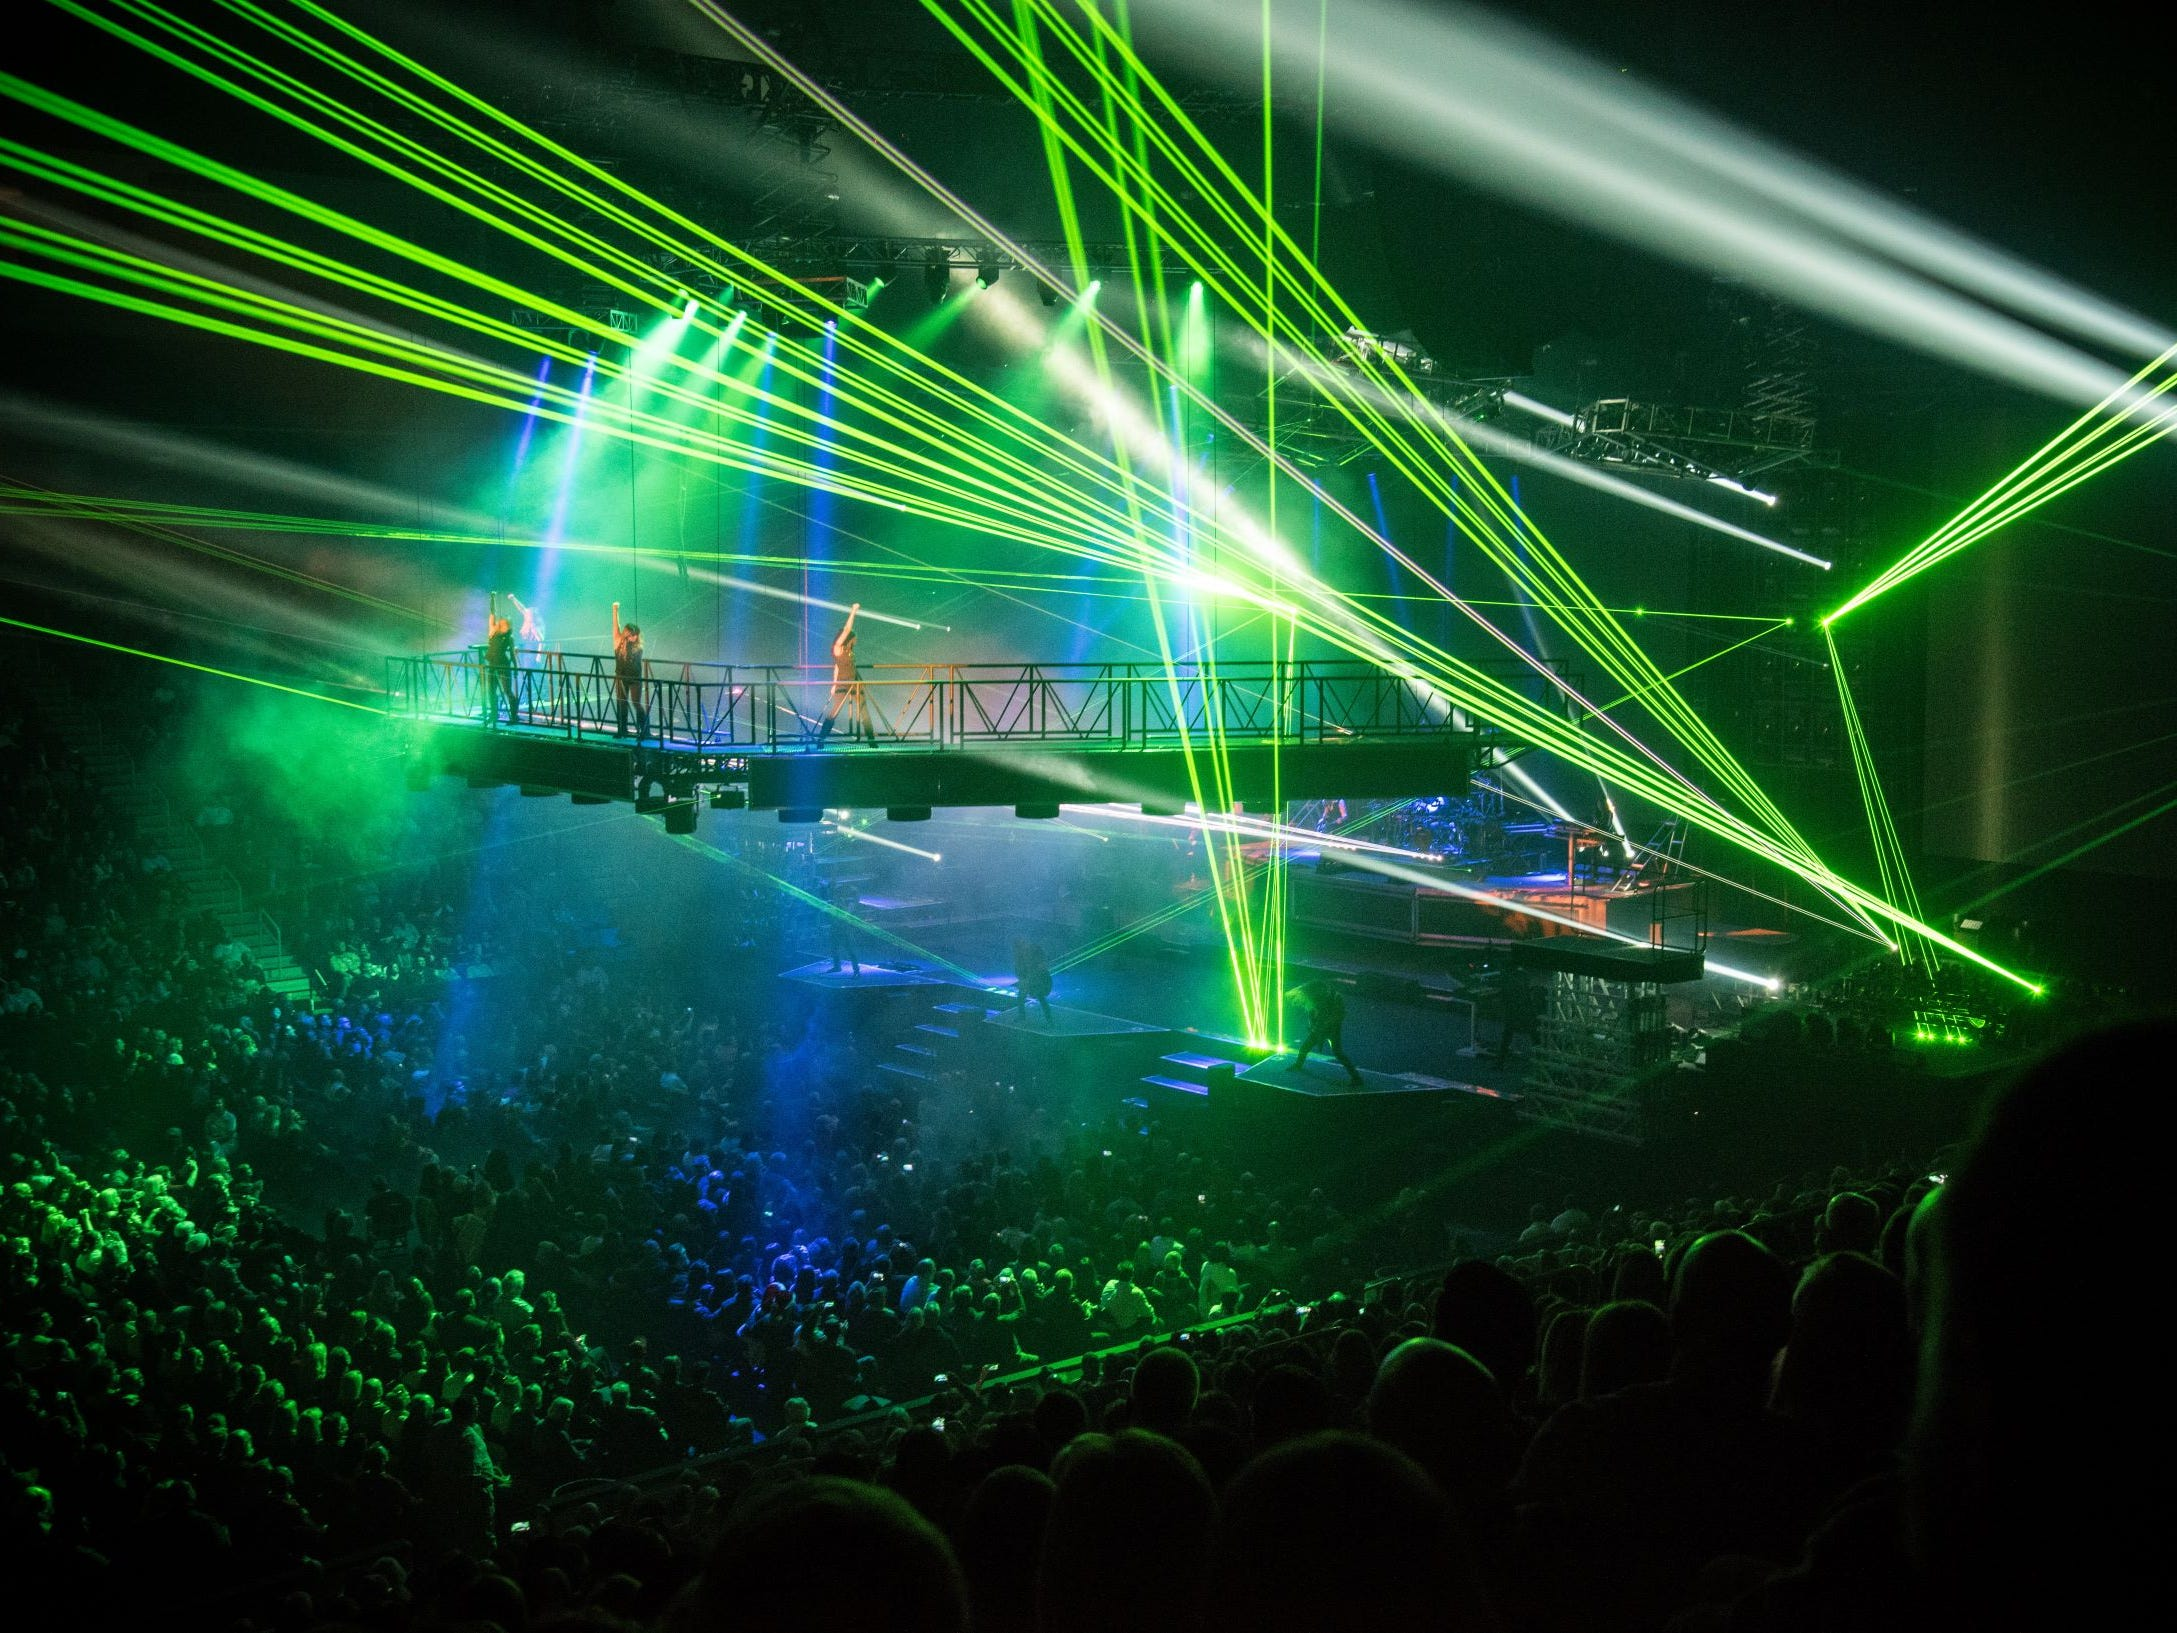 Trans-Siberian Orchestra will perform two shows next week at the Resch Center  -- at 4 and 8 p.m. Nov. 14.